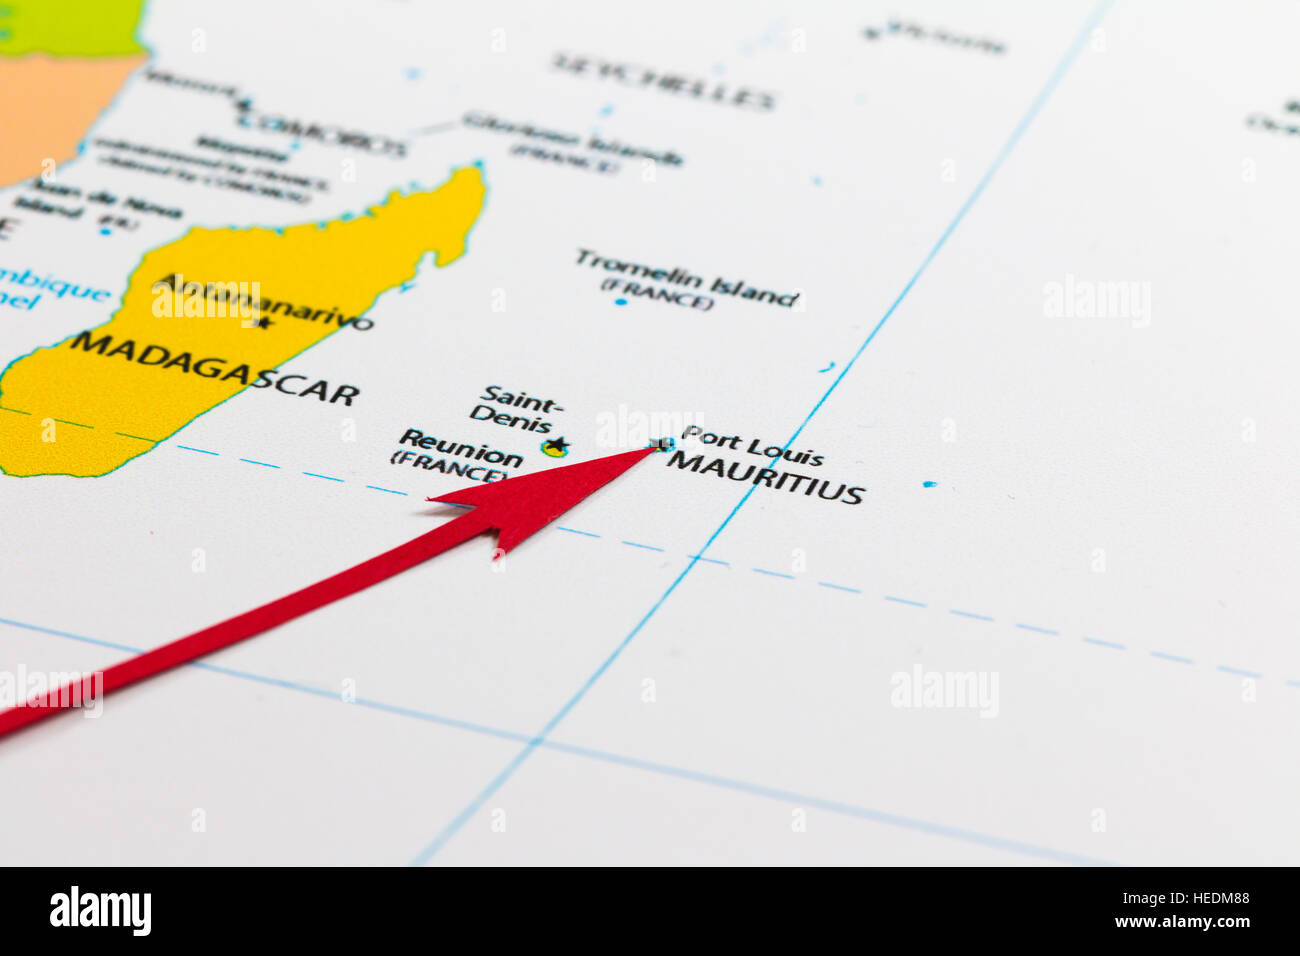 Red Arrow Pointing Mauritius On The Map Of Africa Continent Stock - Mauritius map africa